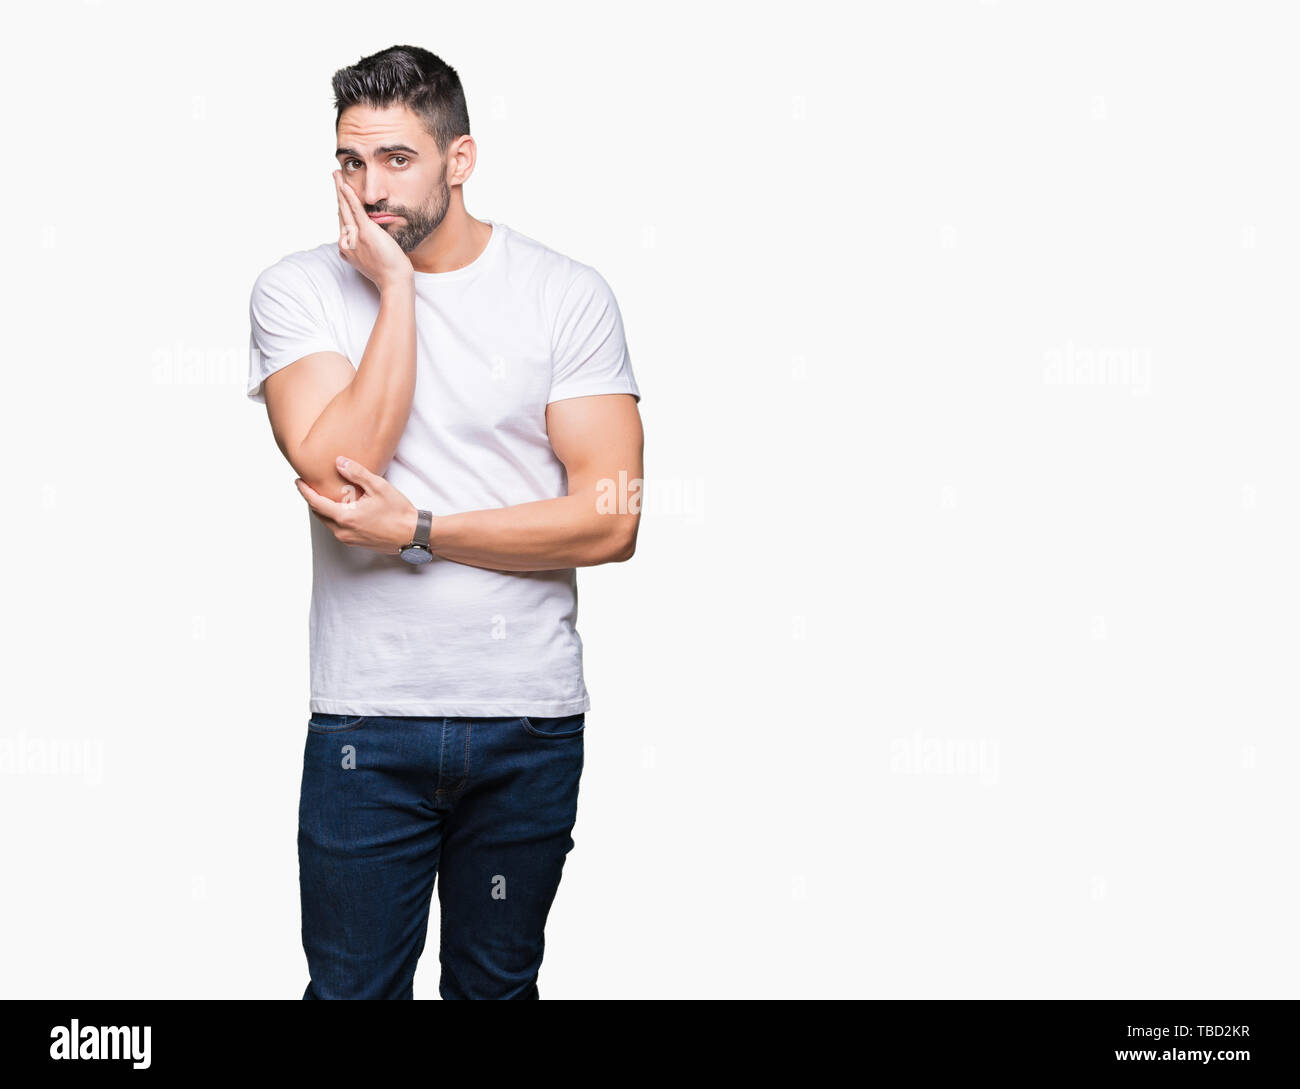 Young man wearing casual white t-shirt over isolated background thinking looking tired and bored with depression problems with crossed arms. Stock Photo